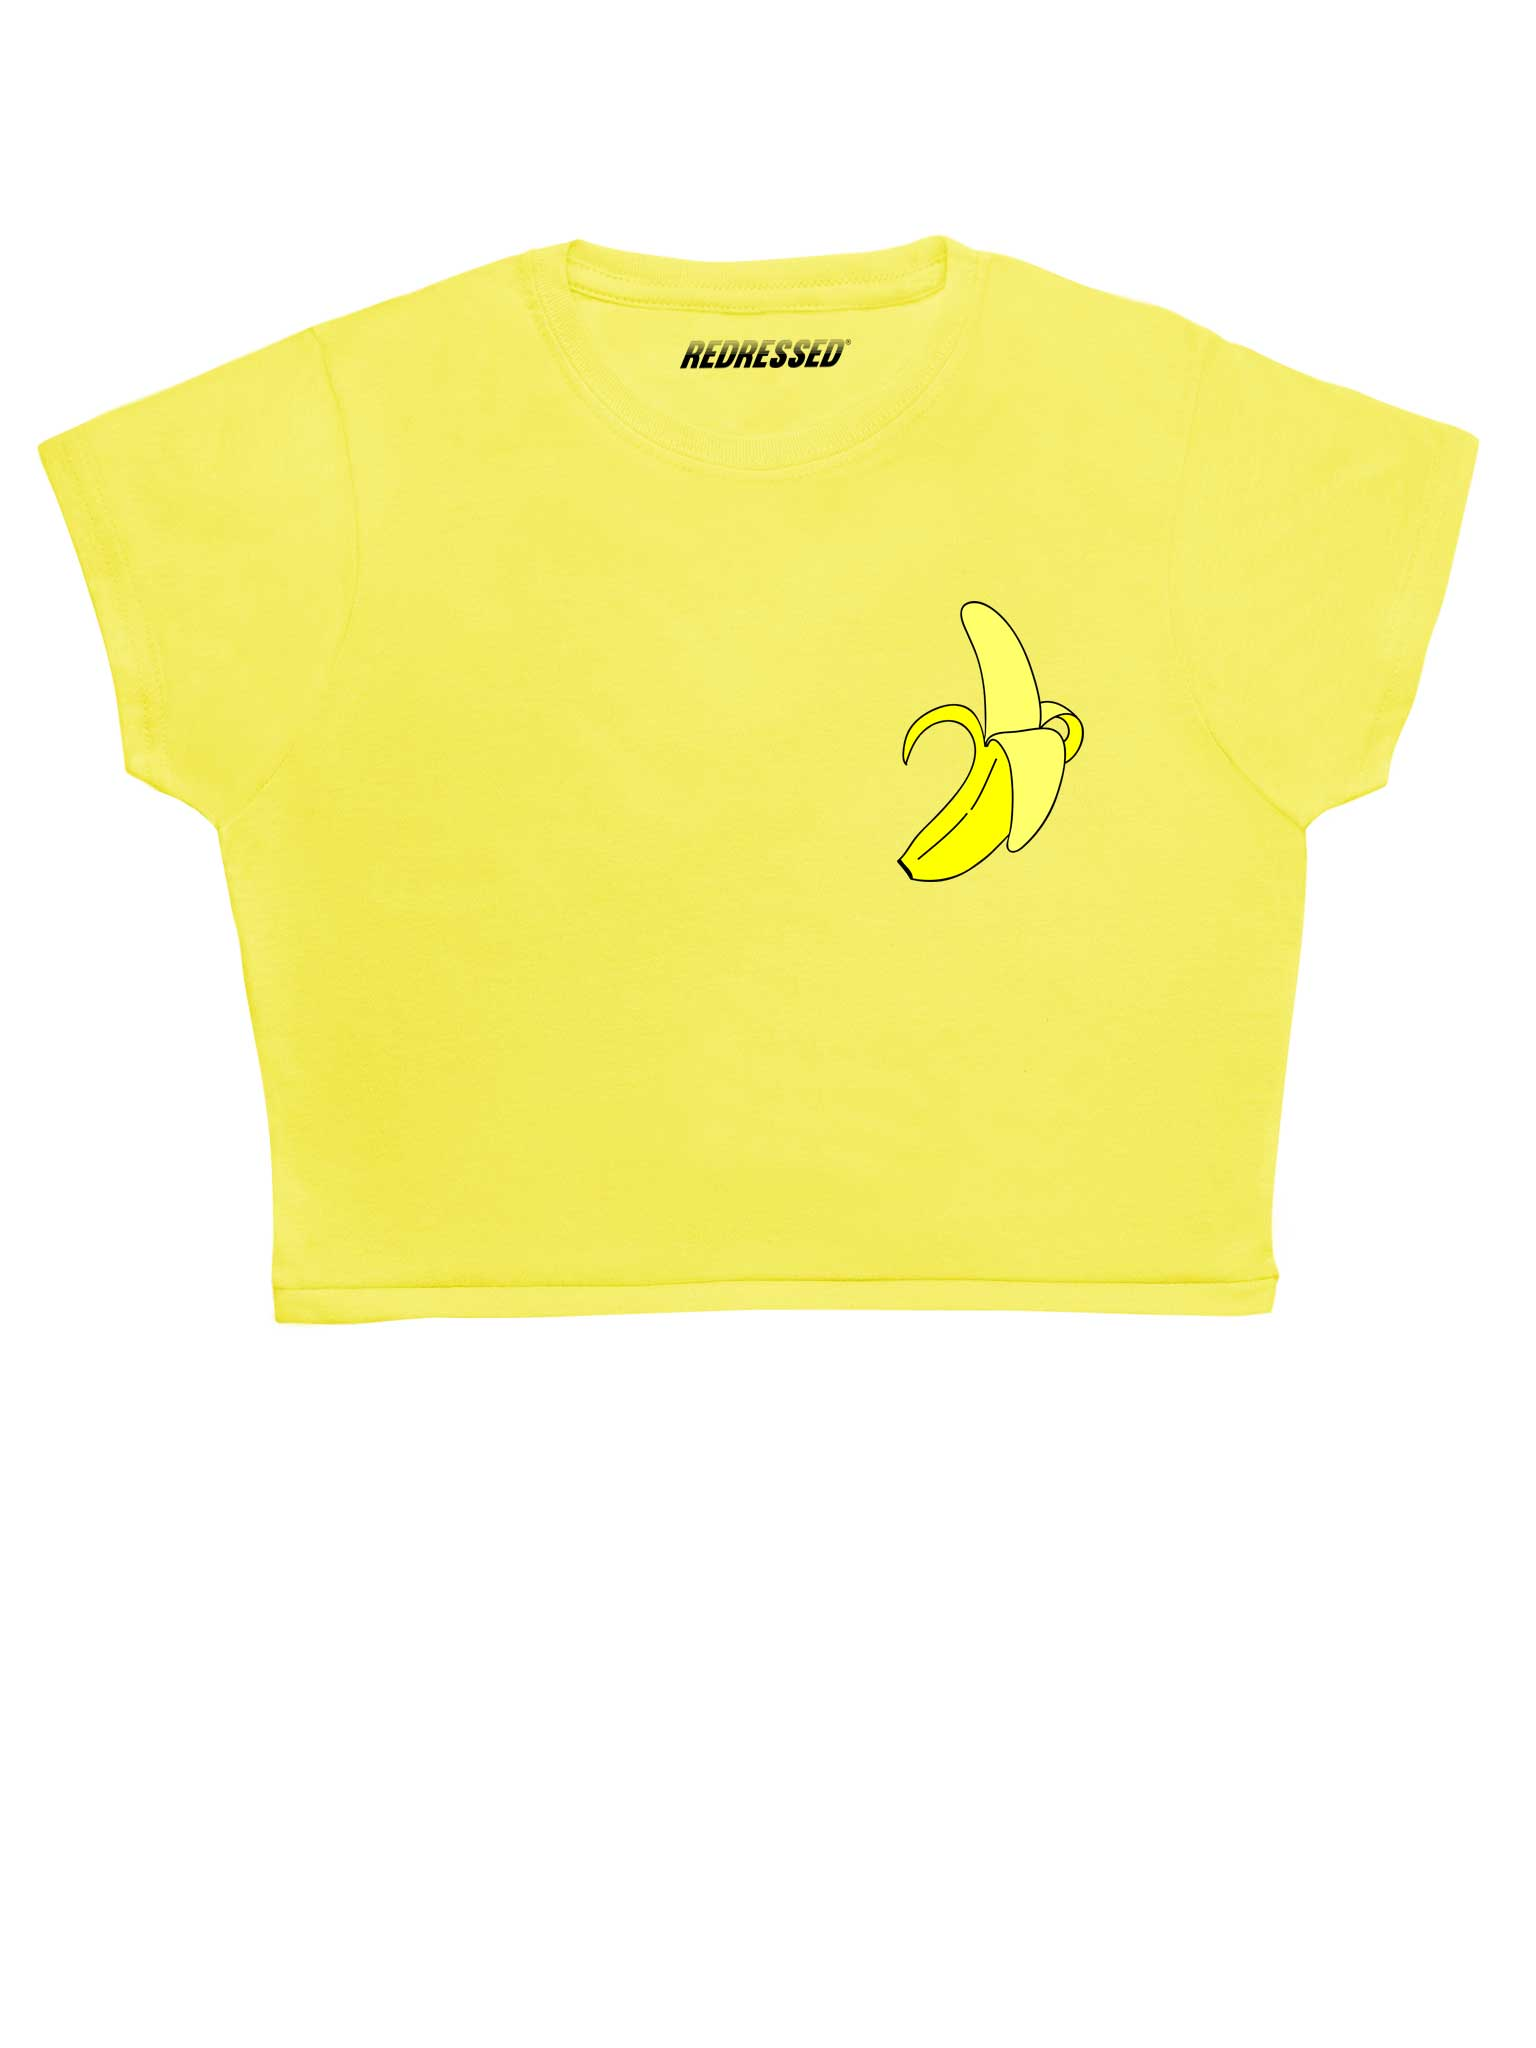 d7b7cca8c04d6 Banana crop top redressed jpg 1536x2048 Banana crop top